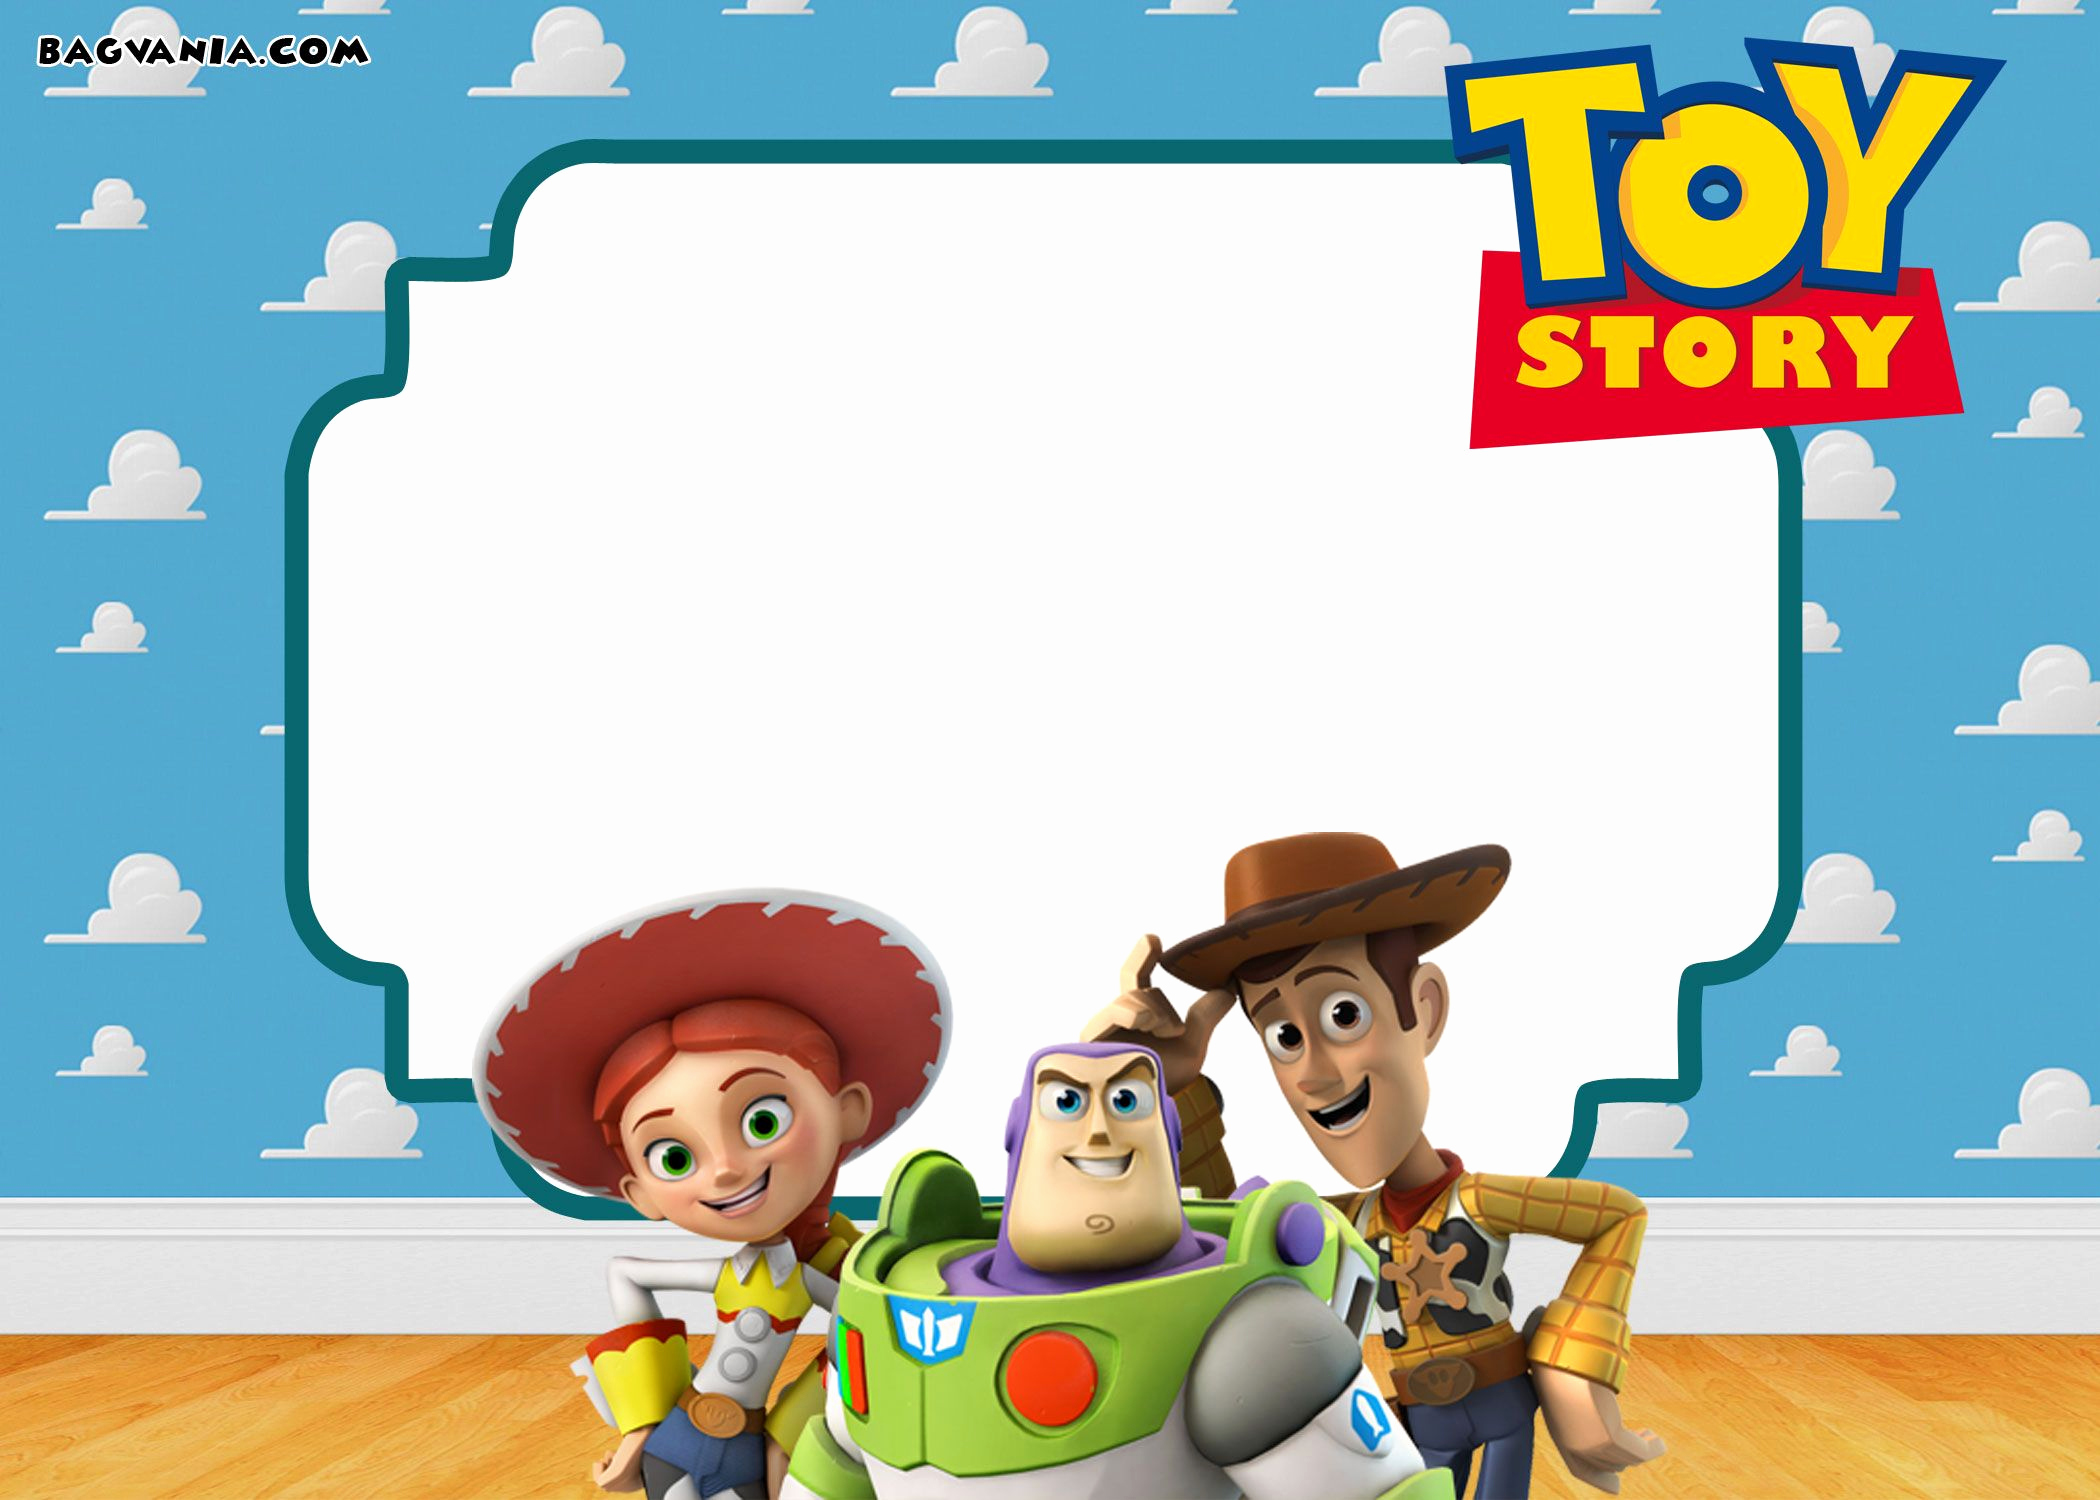 Toy Story Invitation Template Download Best Of Free Printable toy Story 3 Birthday Invitations